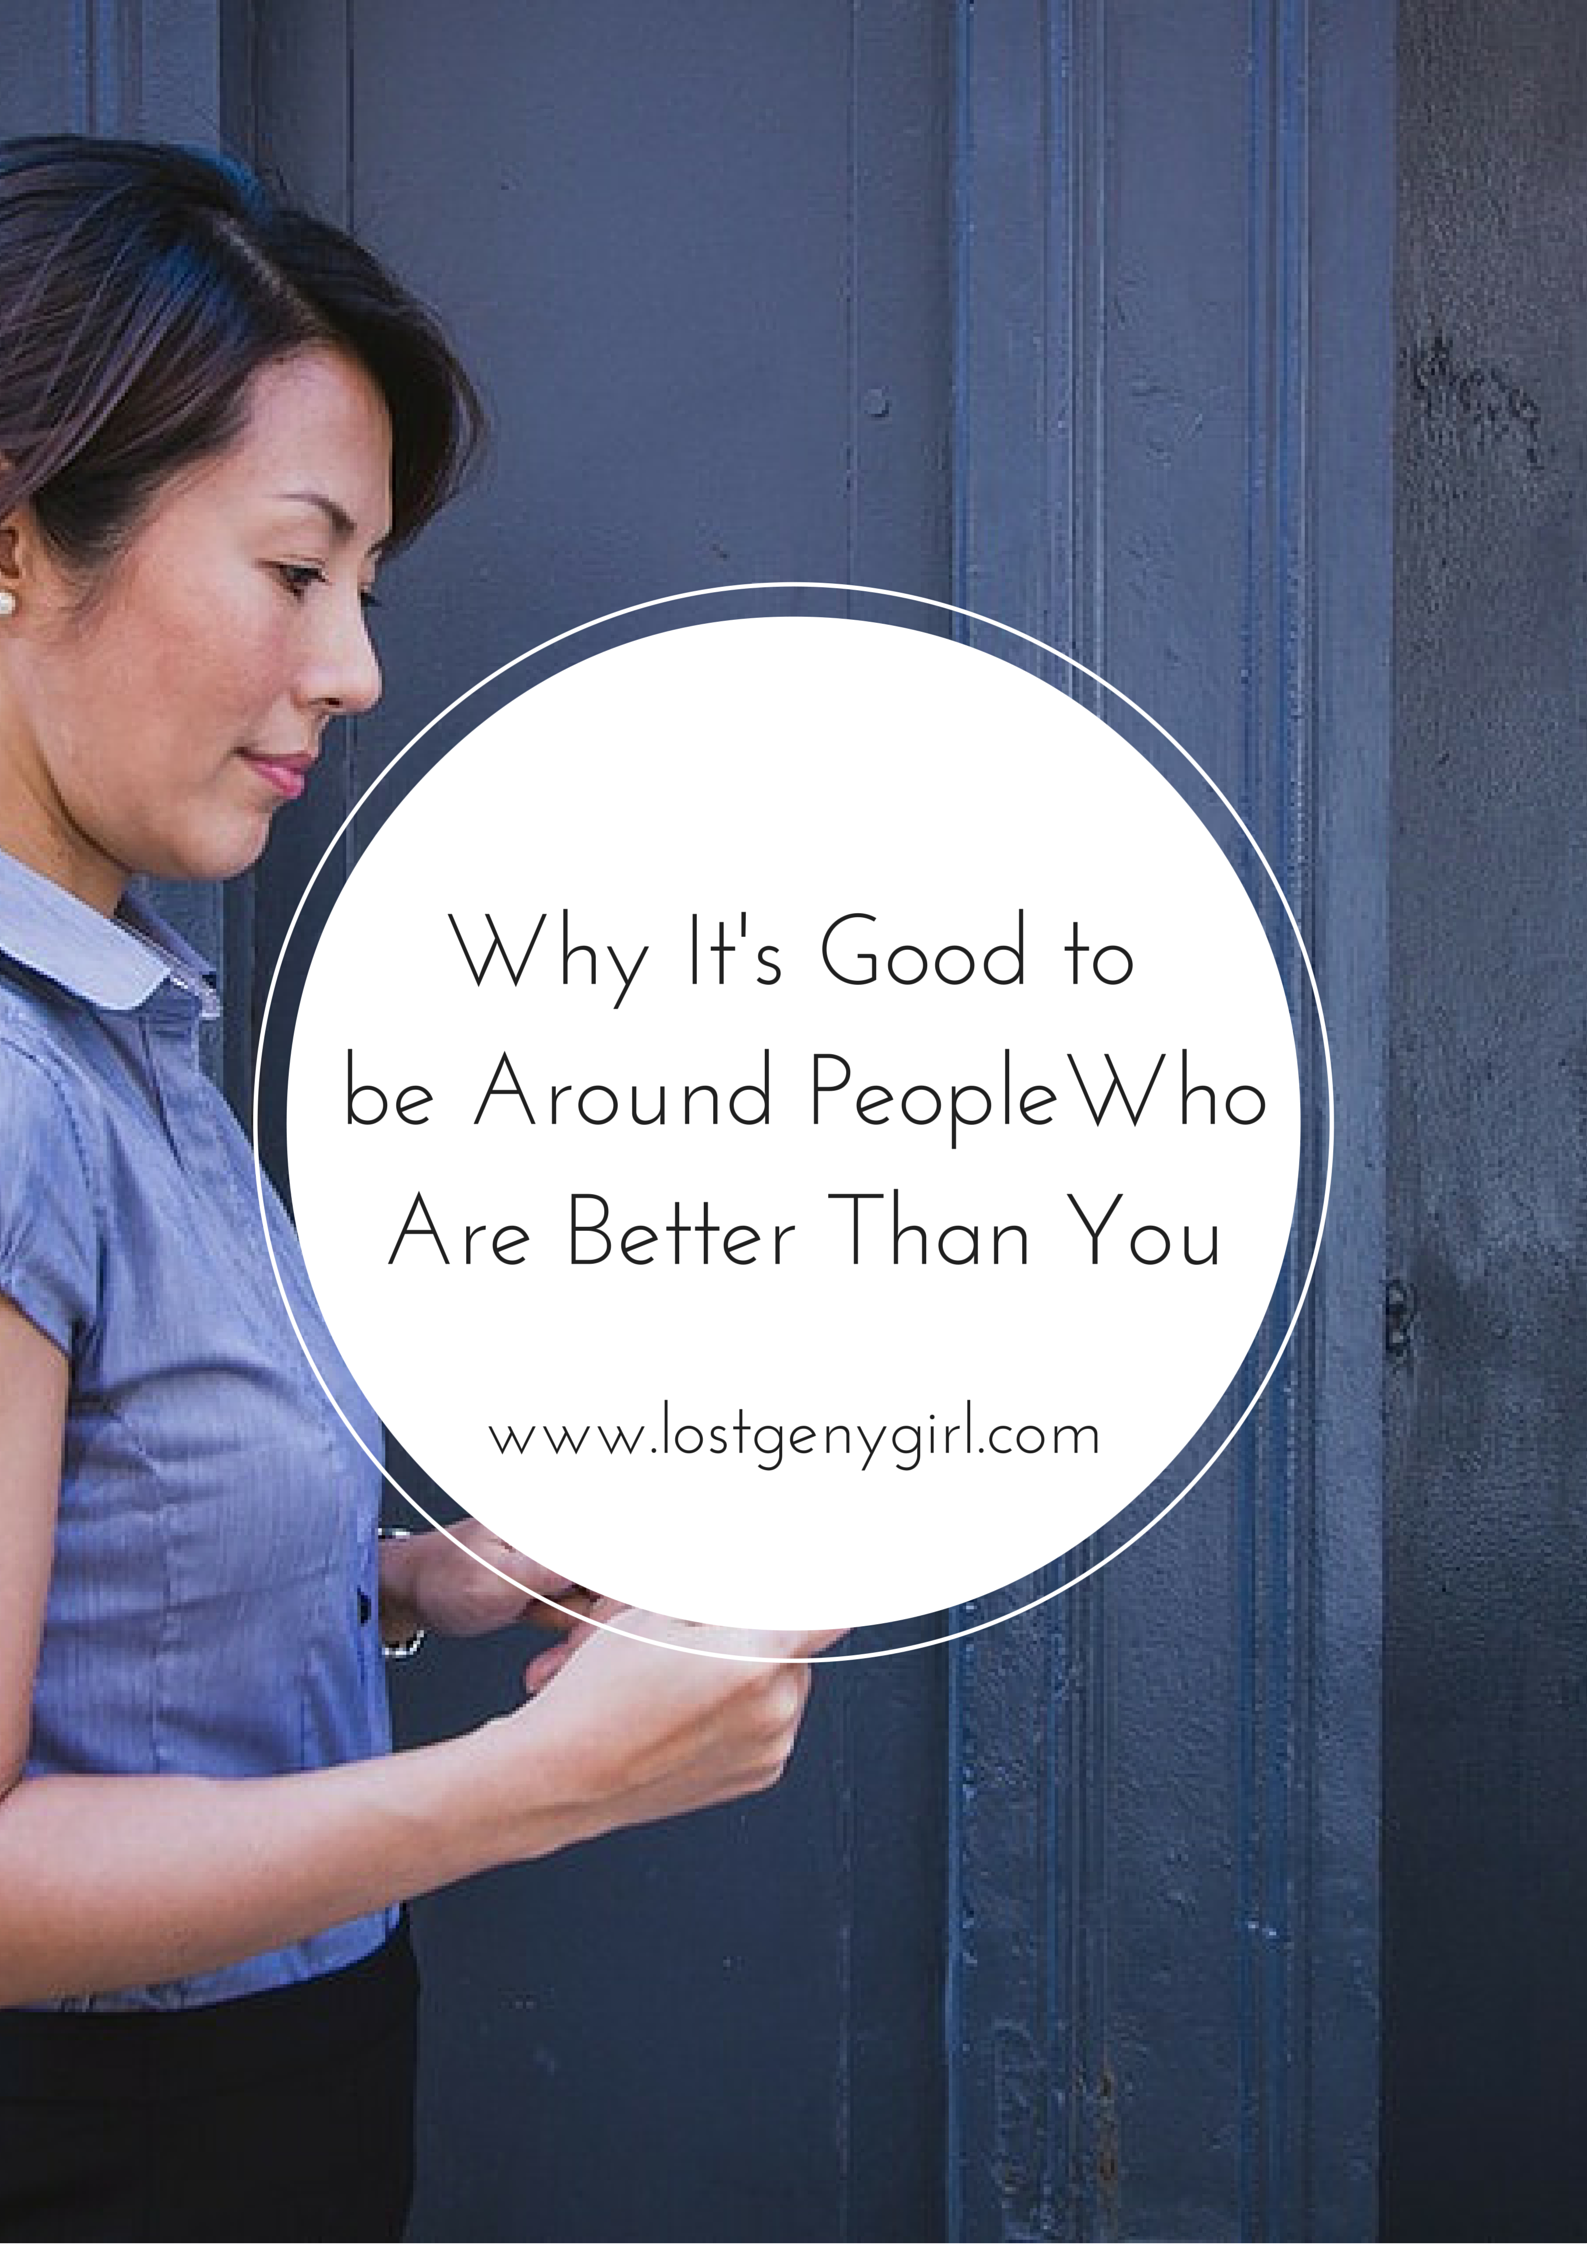 Why It's Good To Be Around People Who Are Better Than You